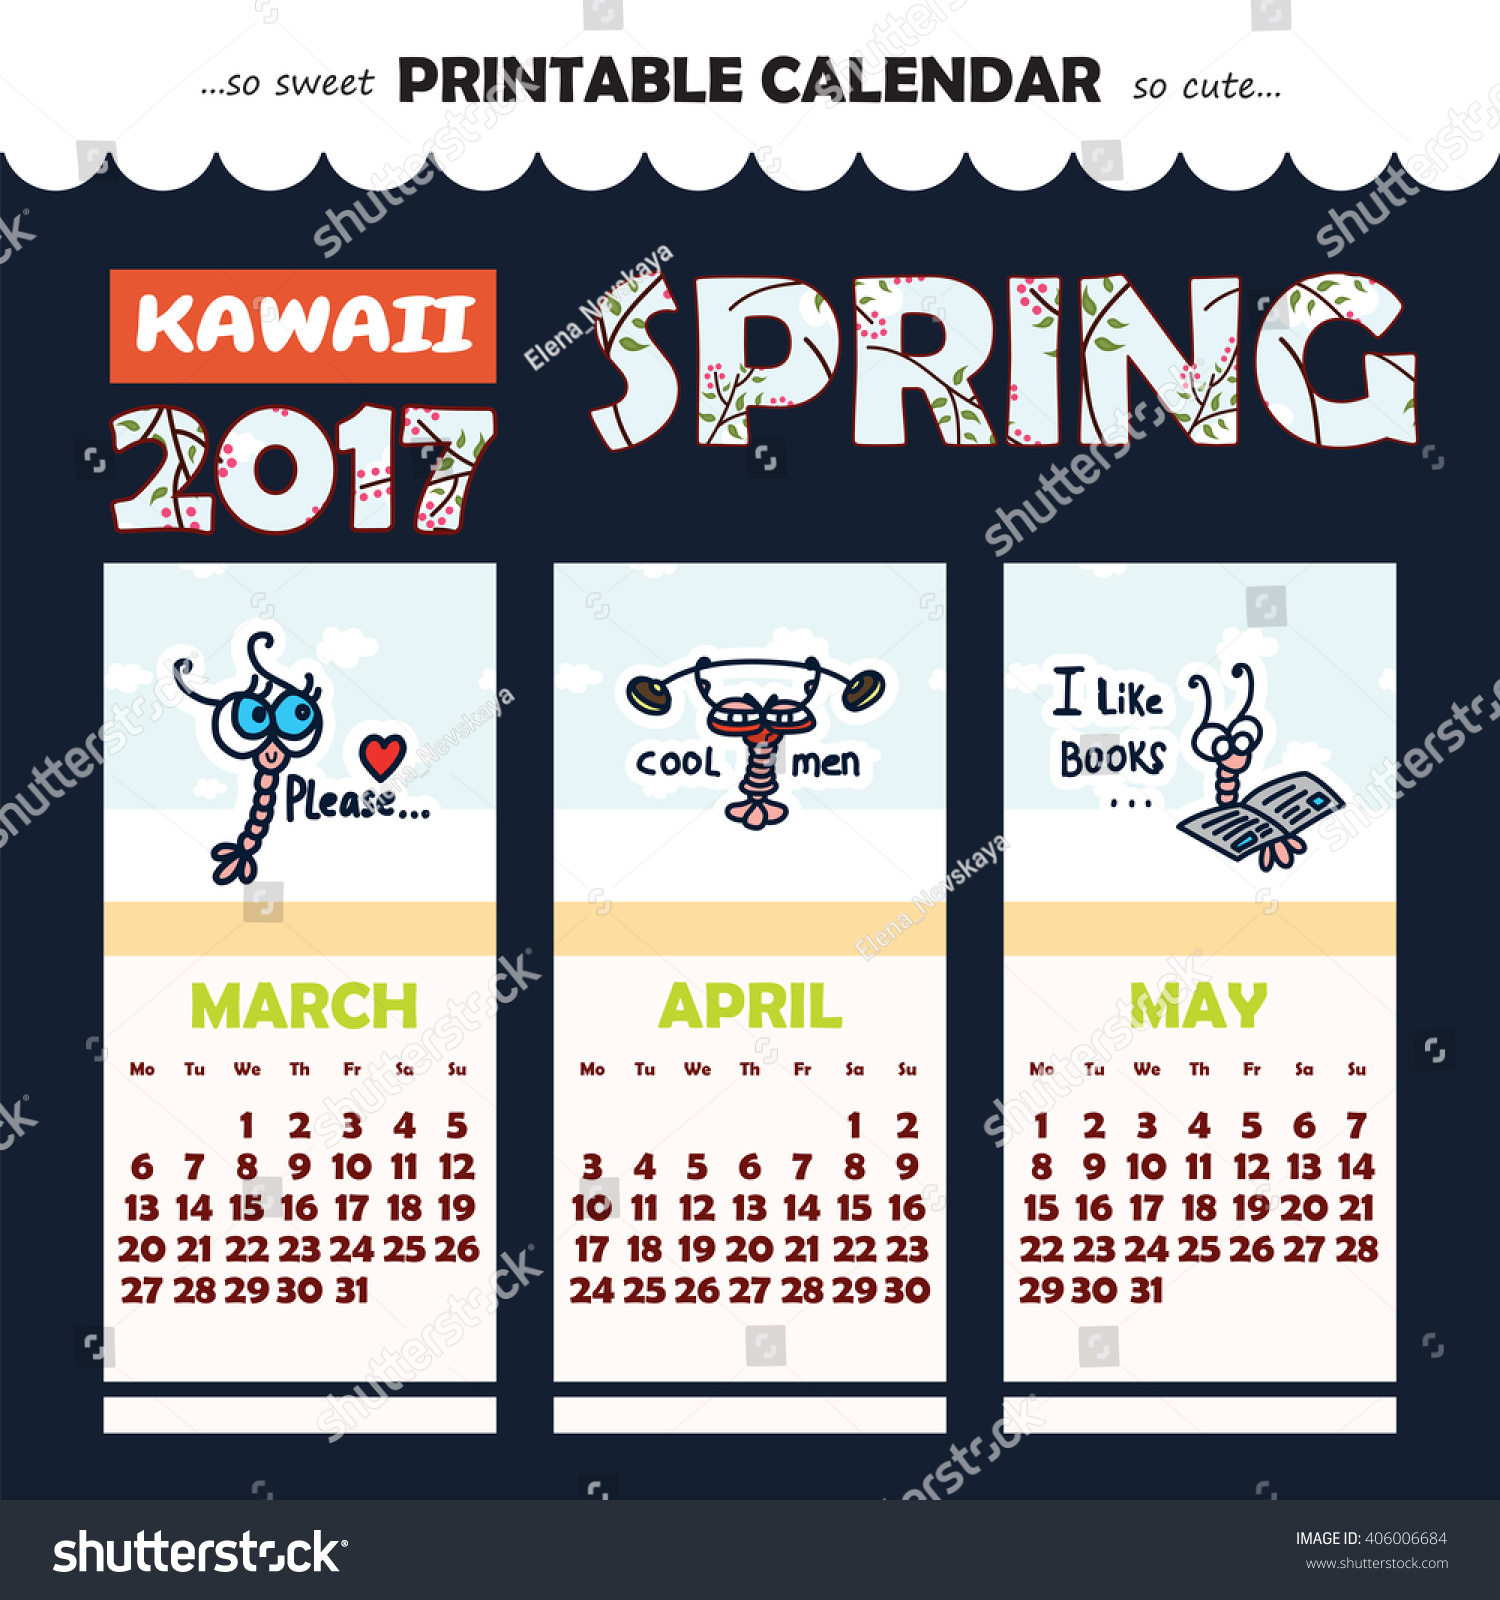 Calendar Month Illustration : Monthly pinup calendar year kawaii stock vector